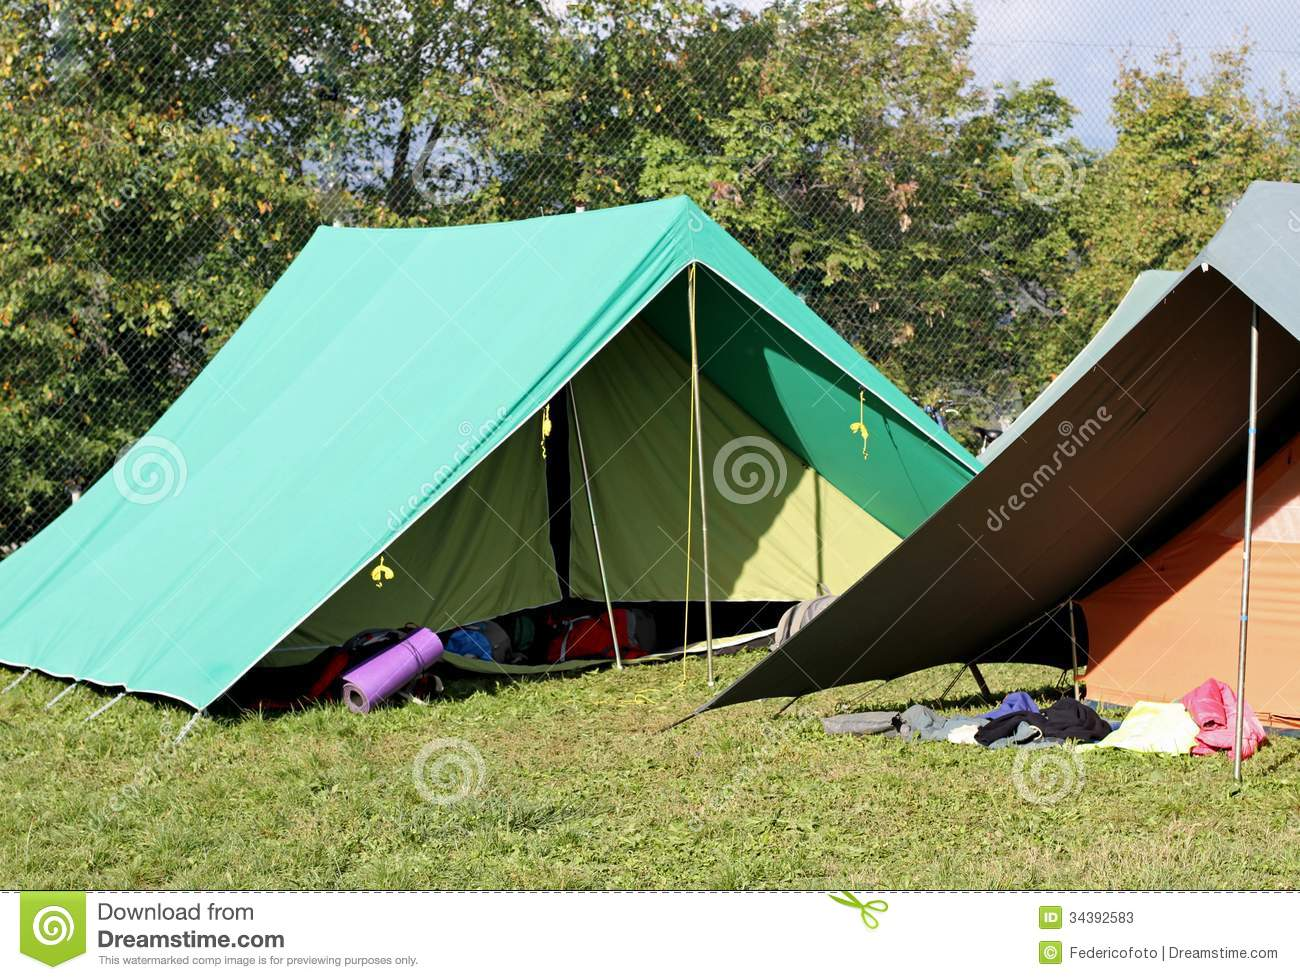 Canadian tents set up in a boy scout c& Stock Photos & Tents At Boy Scout Camp stock image. Image of parsons - 2904207